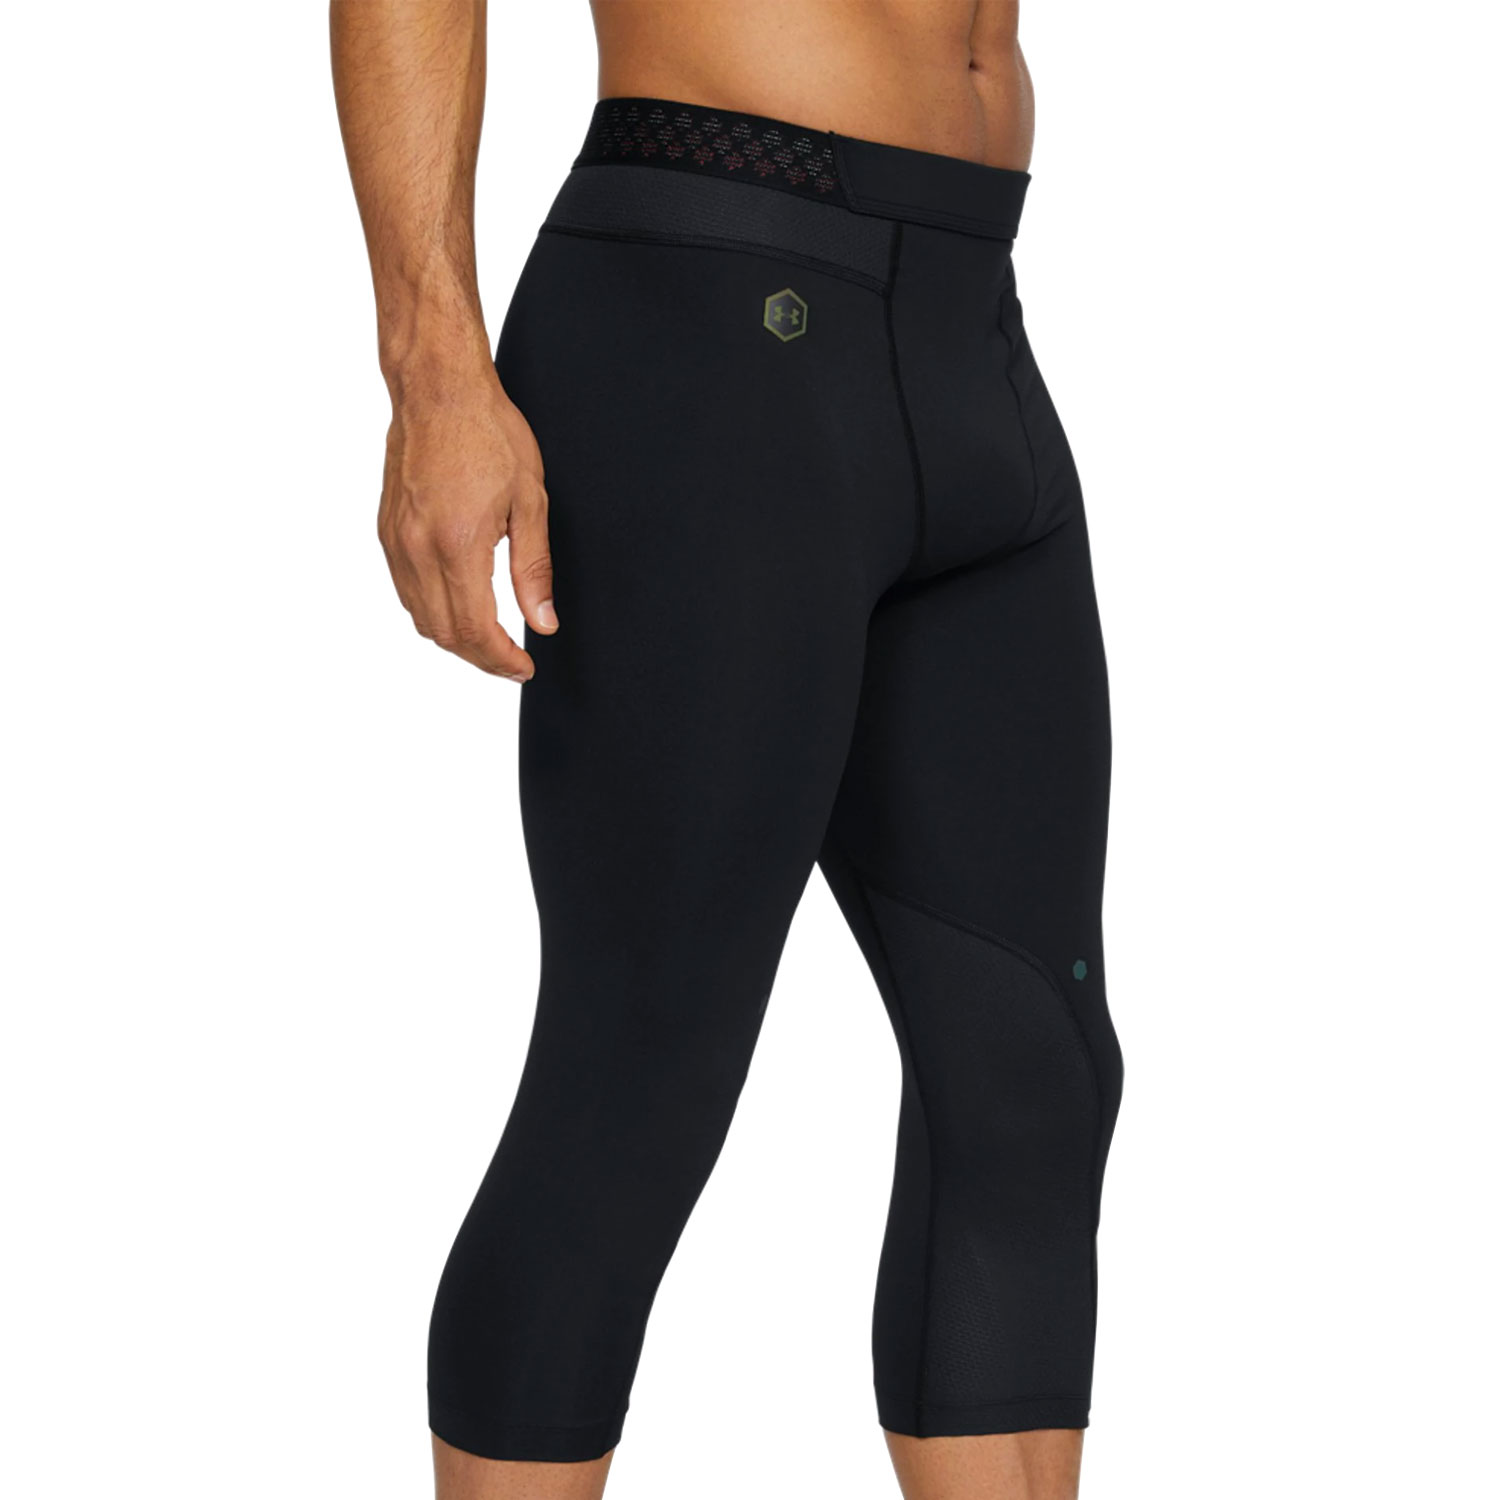 Under Armour Rush 3/4 Tights - Black